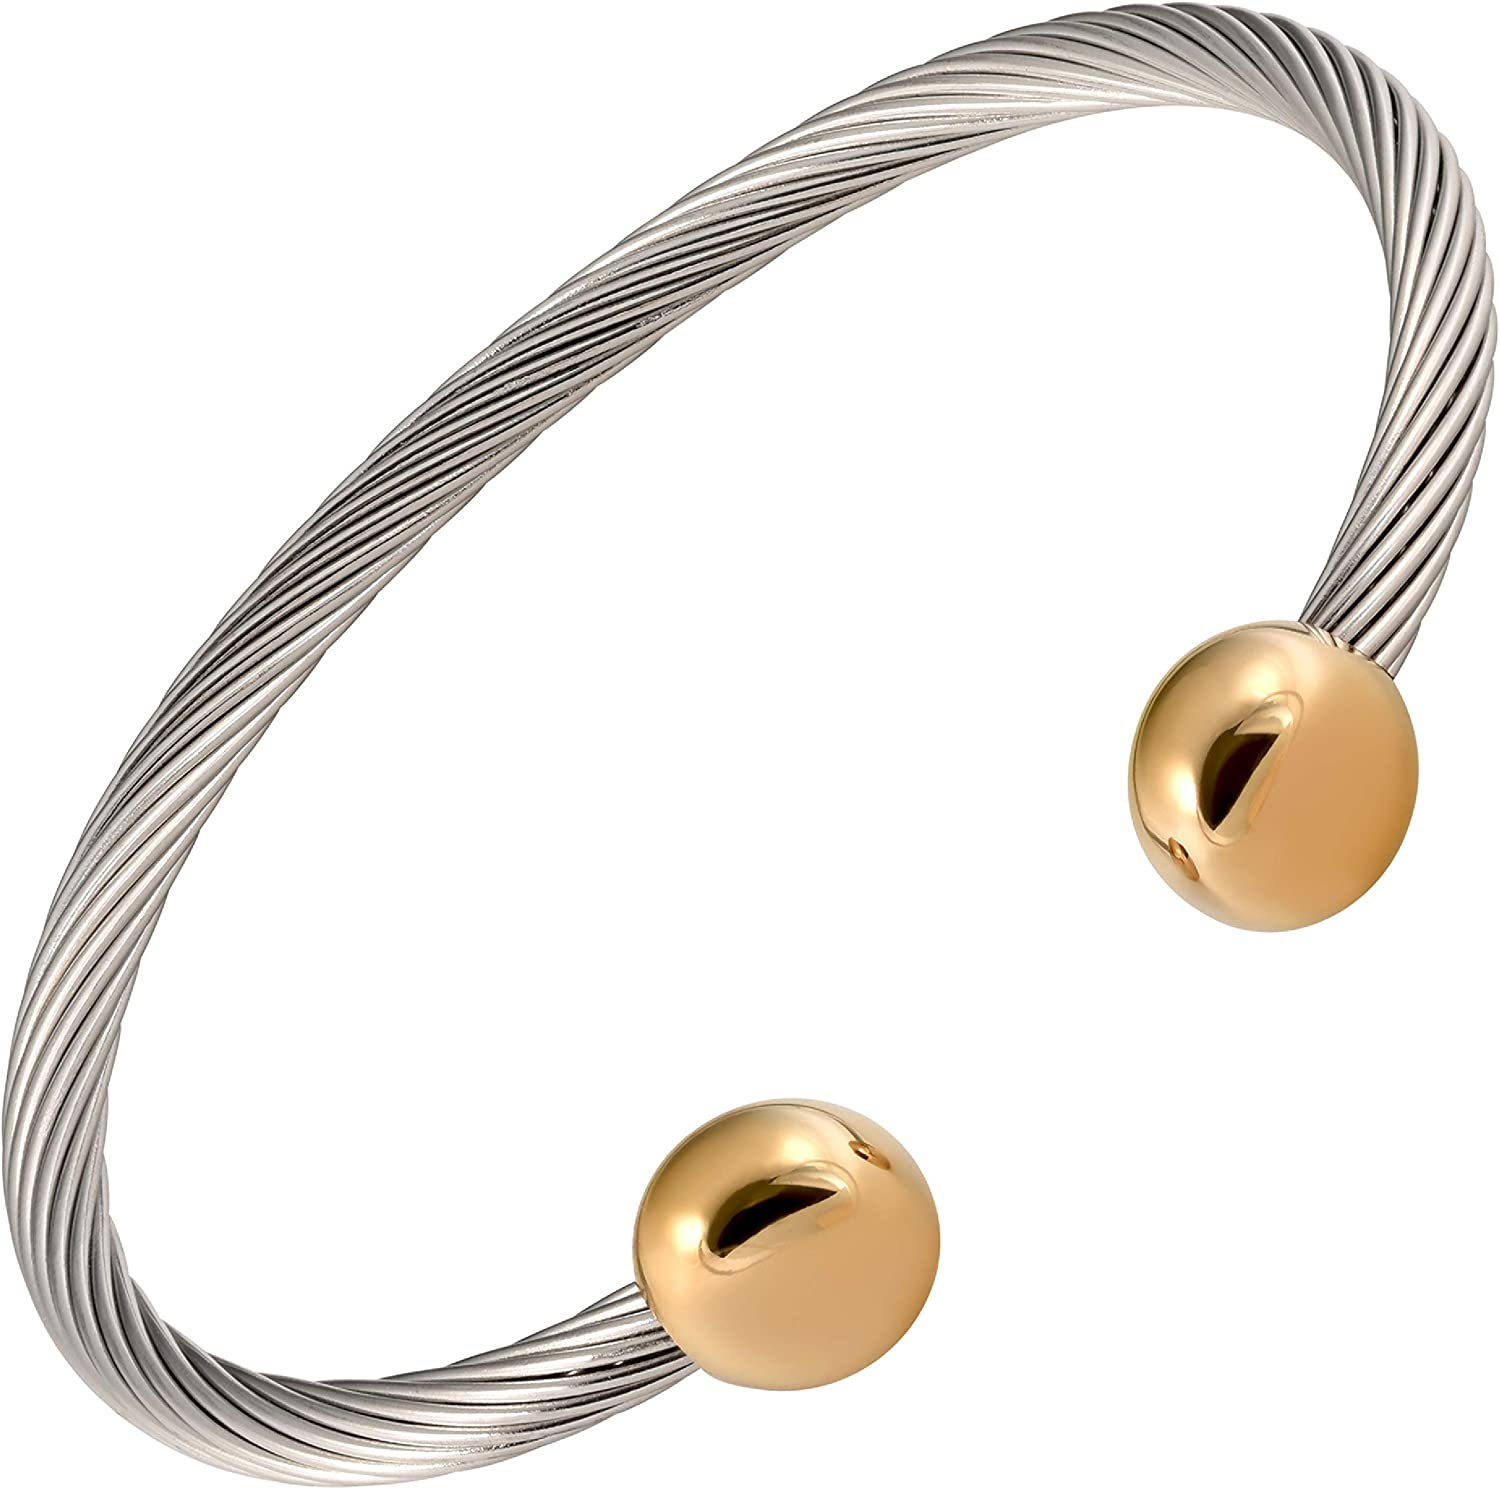 MAGNETJEWELRYSTORE 2-Tone Stainless Steel Magnetic Therapy Bracelet: Health & Personal Care